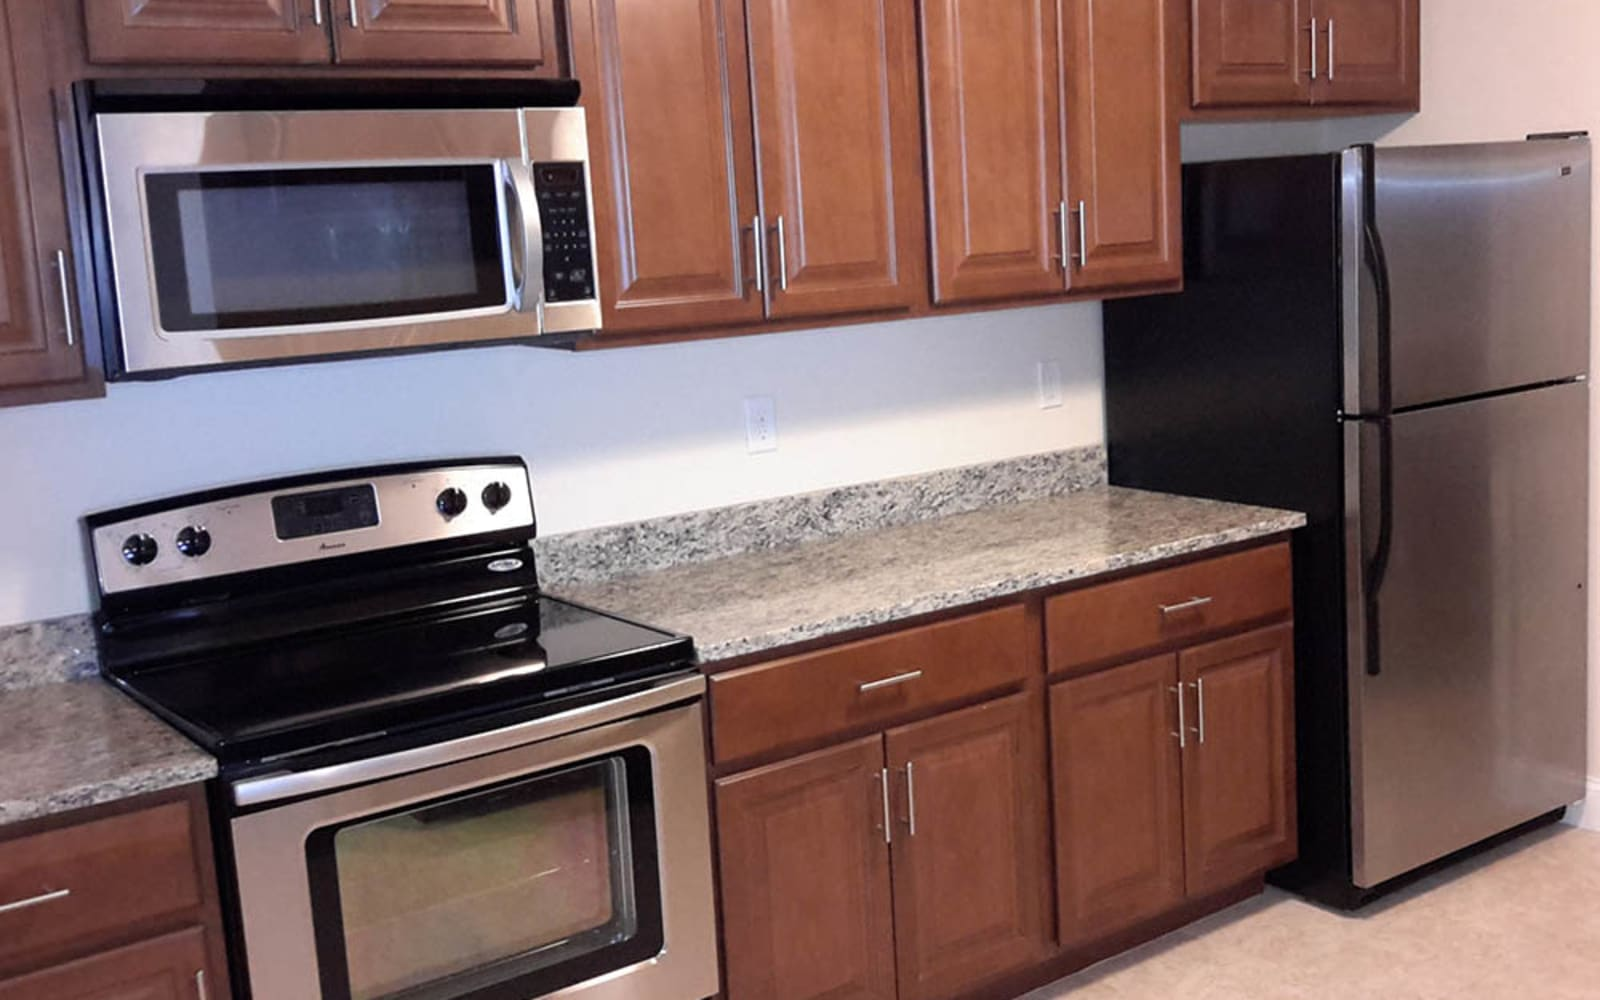 Enjoy an updated kitchen at Grassfields Commons in Dracut, Massachusetts